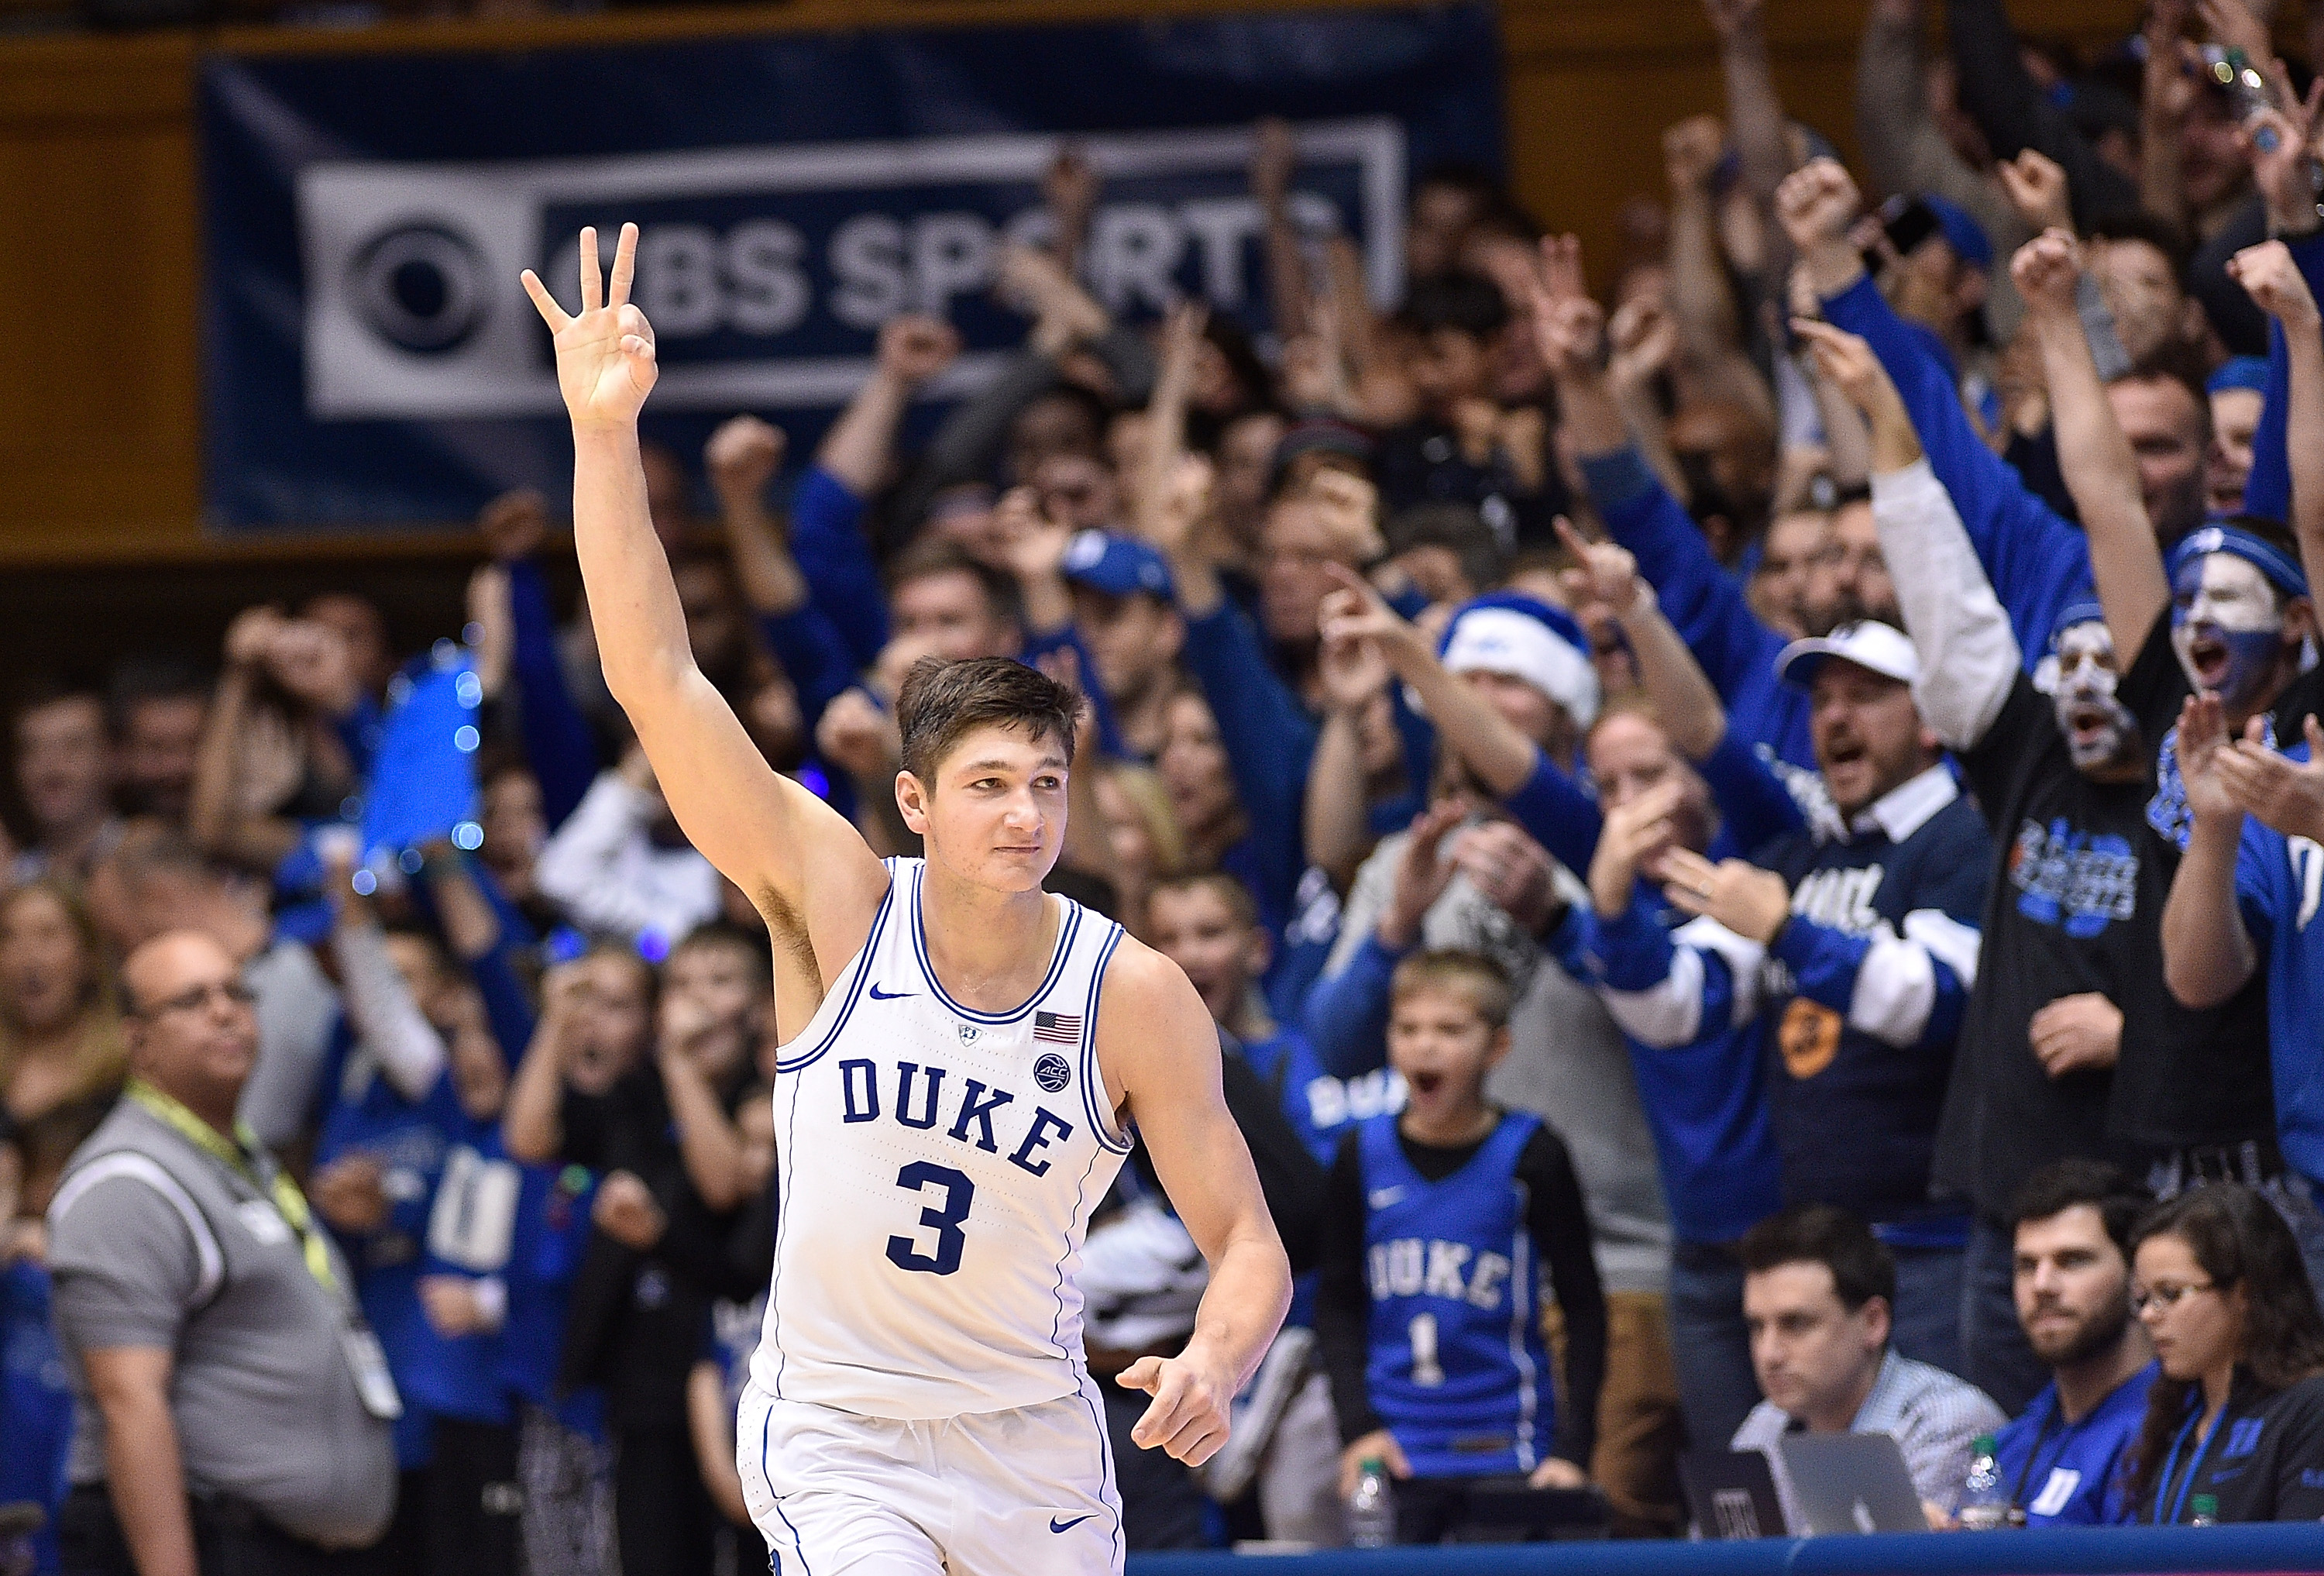 Duke bounces back by pounding Pitt